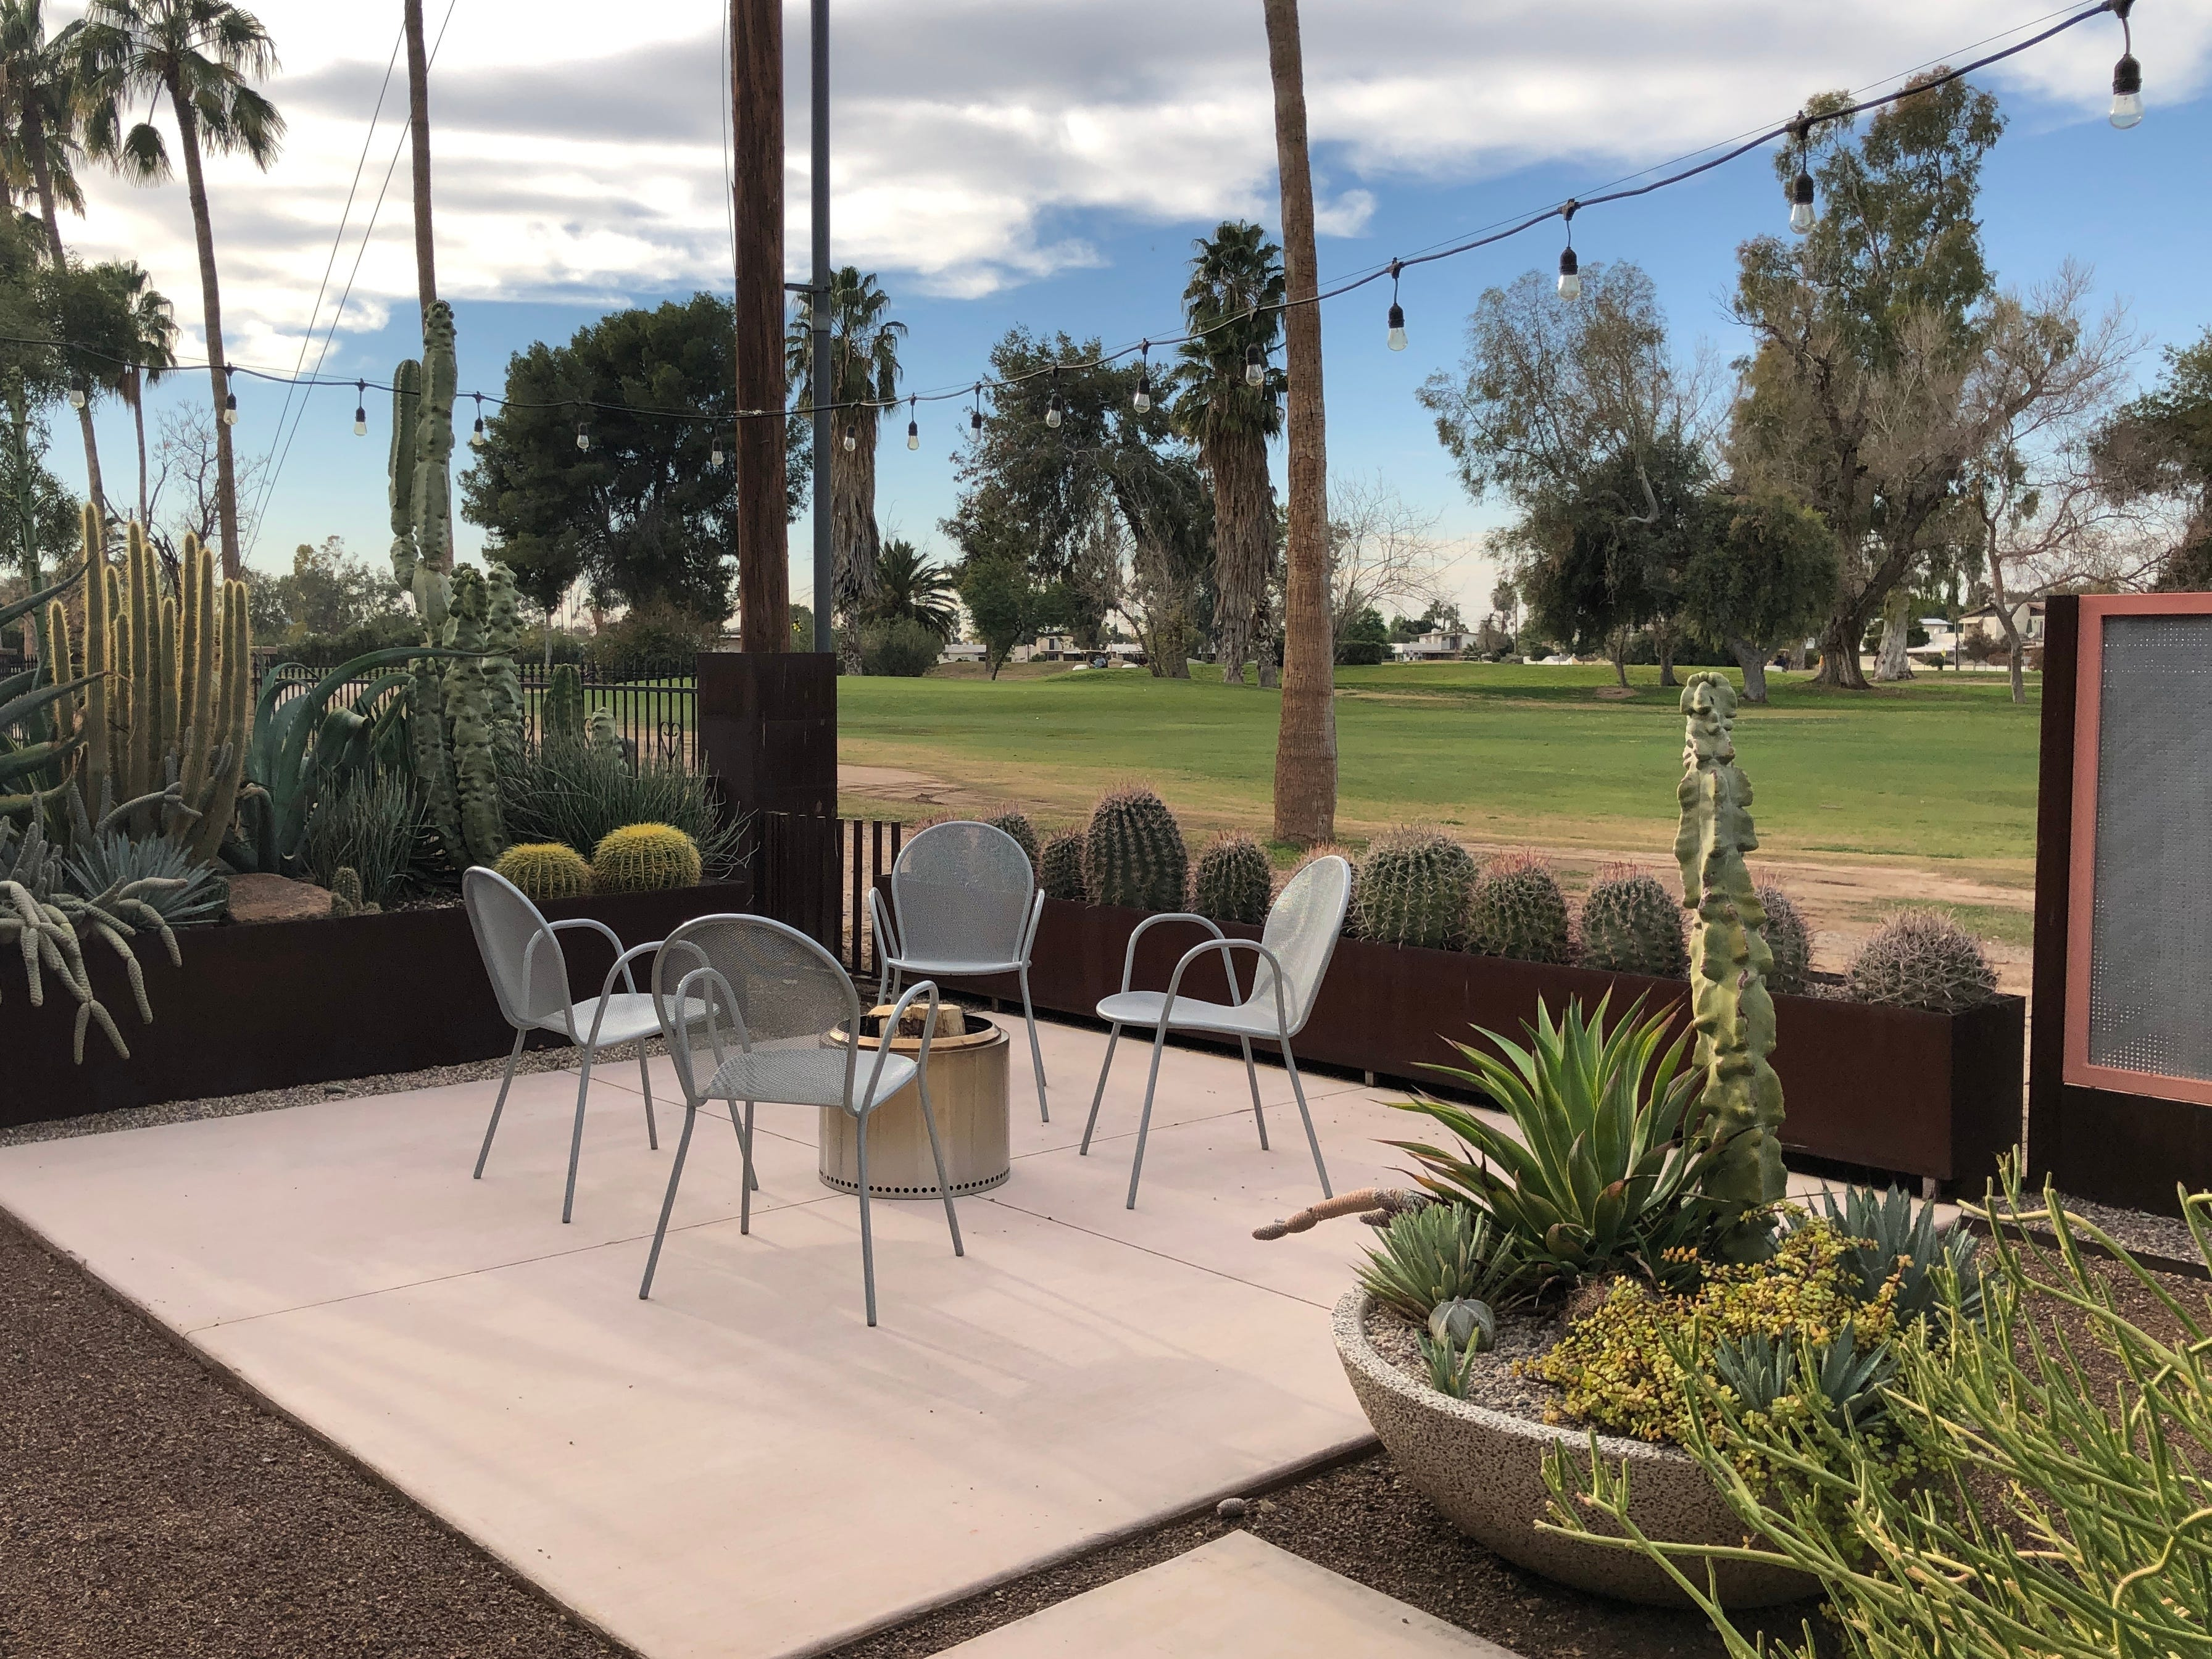 Succulents and other desert foliage create a cozy and low-maintenance environment amid a golf-course backdrop.